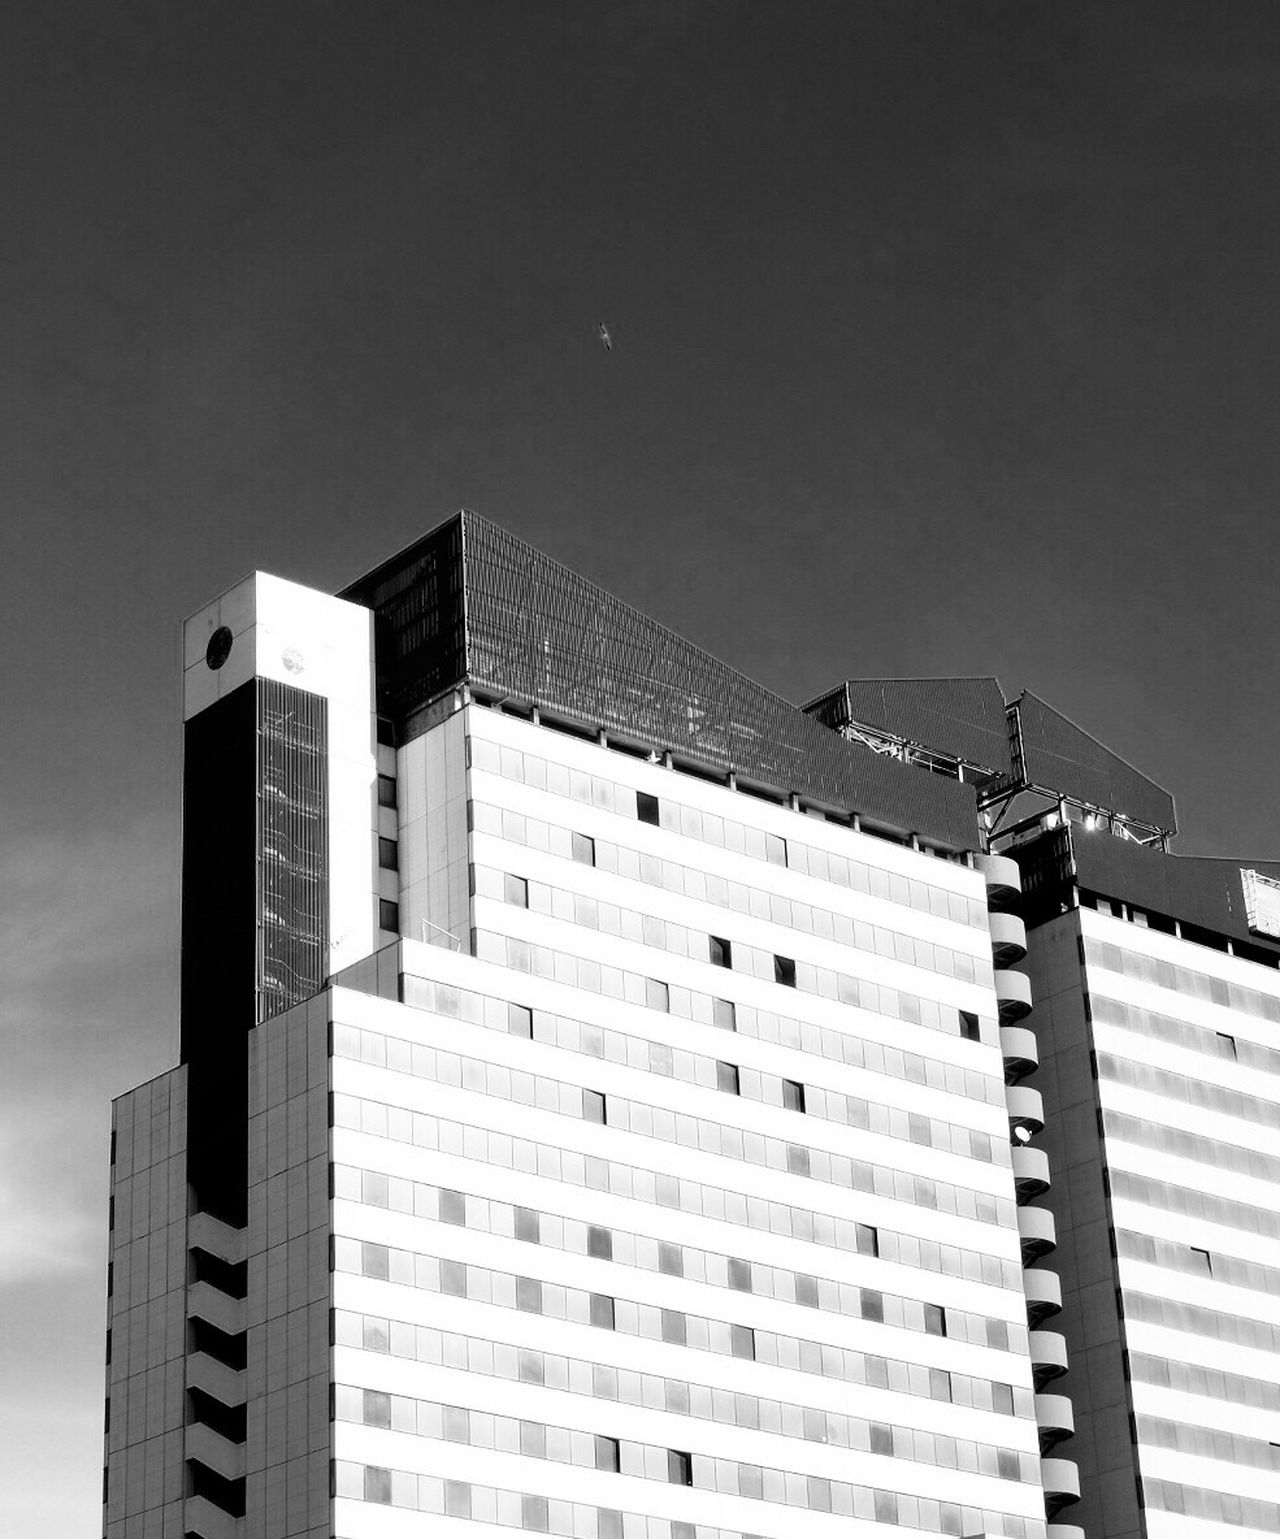 Building Exterior Architecture Built Structure Low Angle View Outdoors No People Day City Sky City Life Blackandwhite Photography Notes From Babylon Shootermag TheMinimals (less Edit Juxt Photography) Architecture